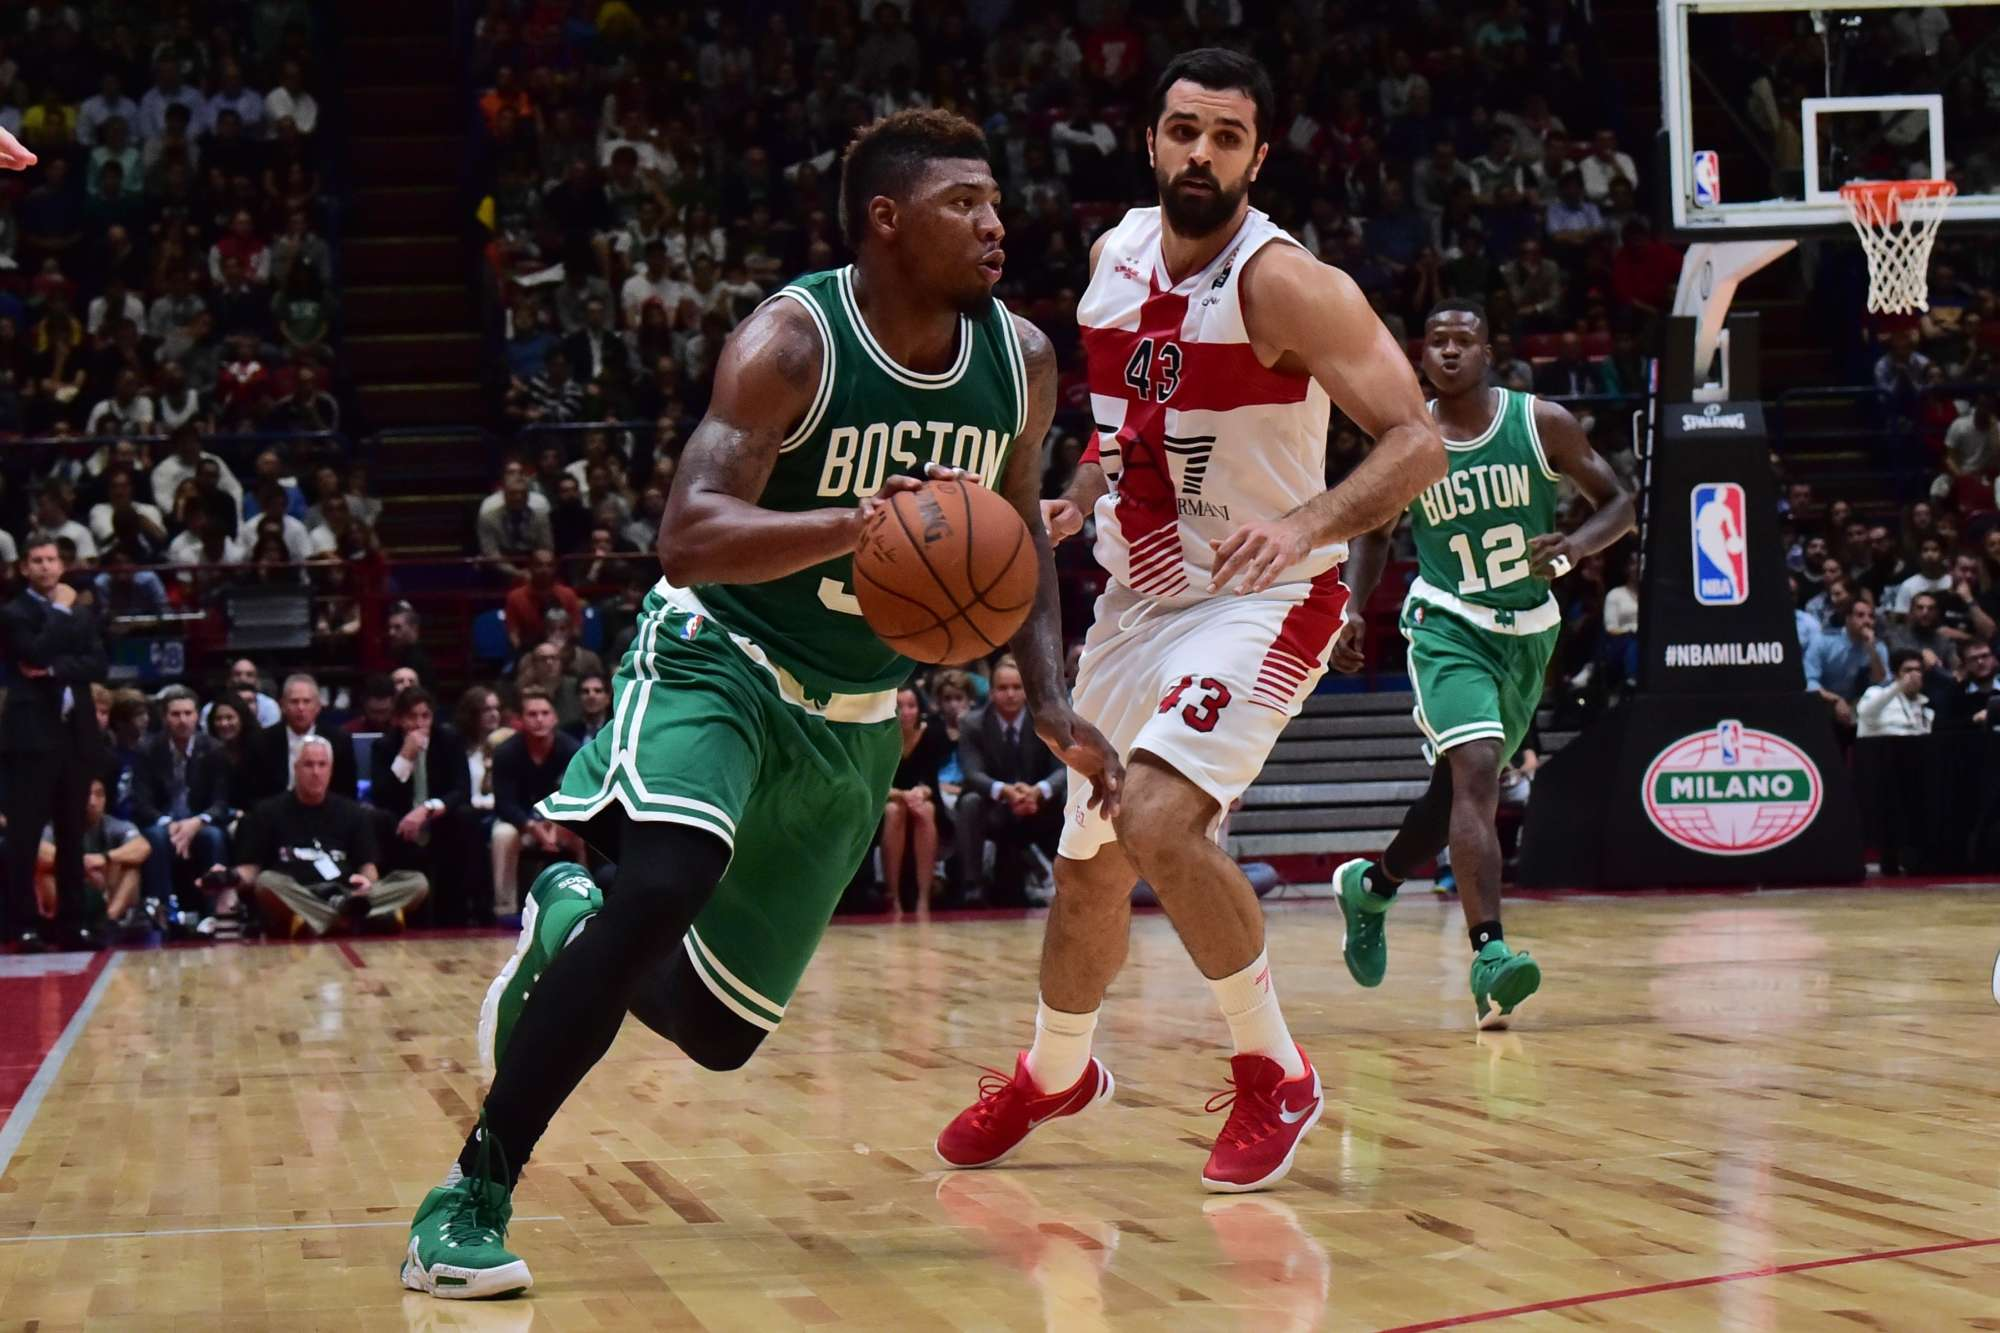 Kruno Simon in difesa su Marcus Smart nel match amichevole contro i Boston Celtics